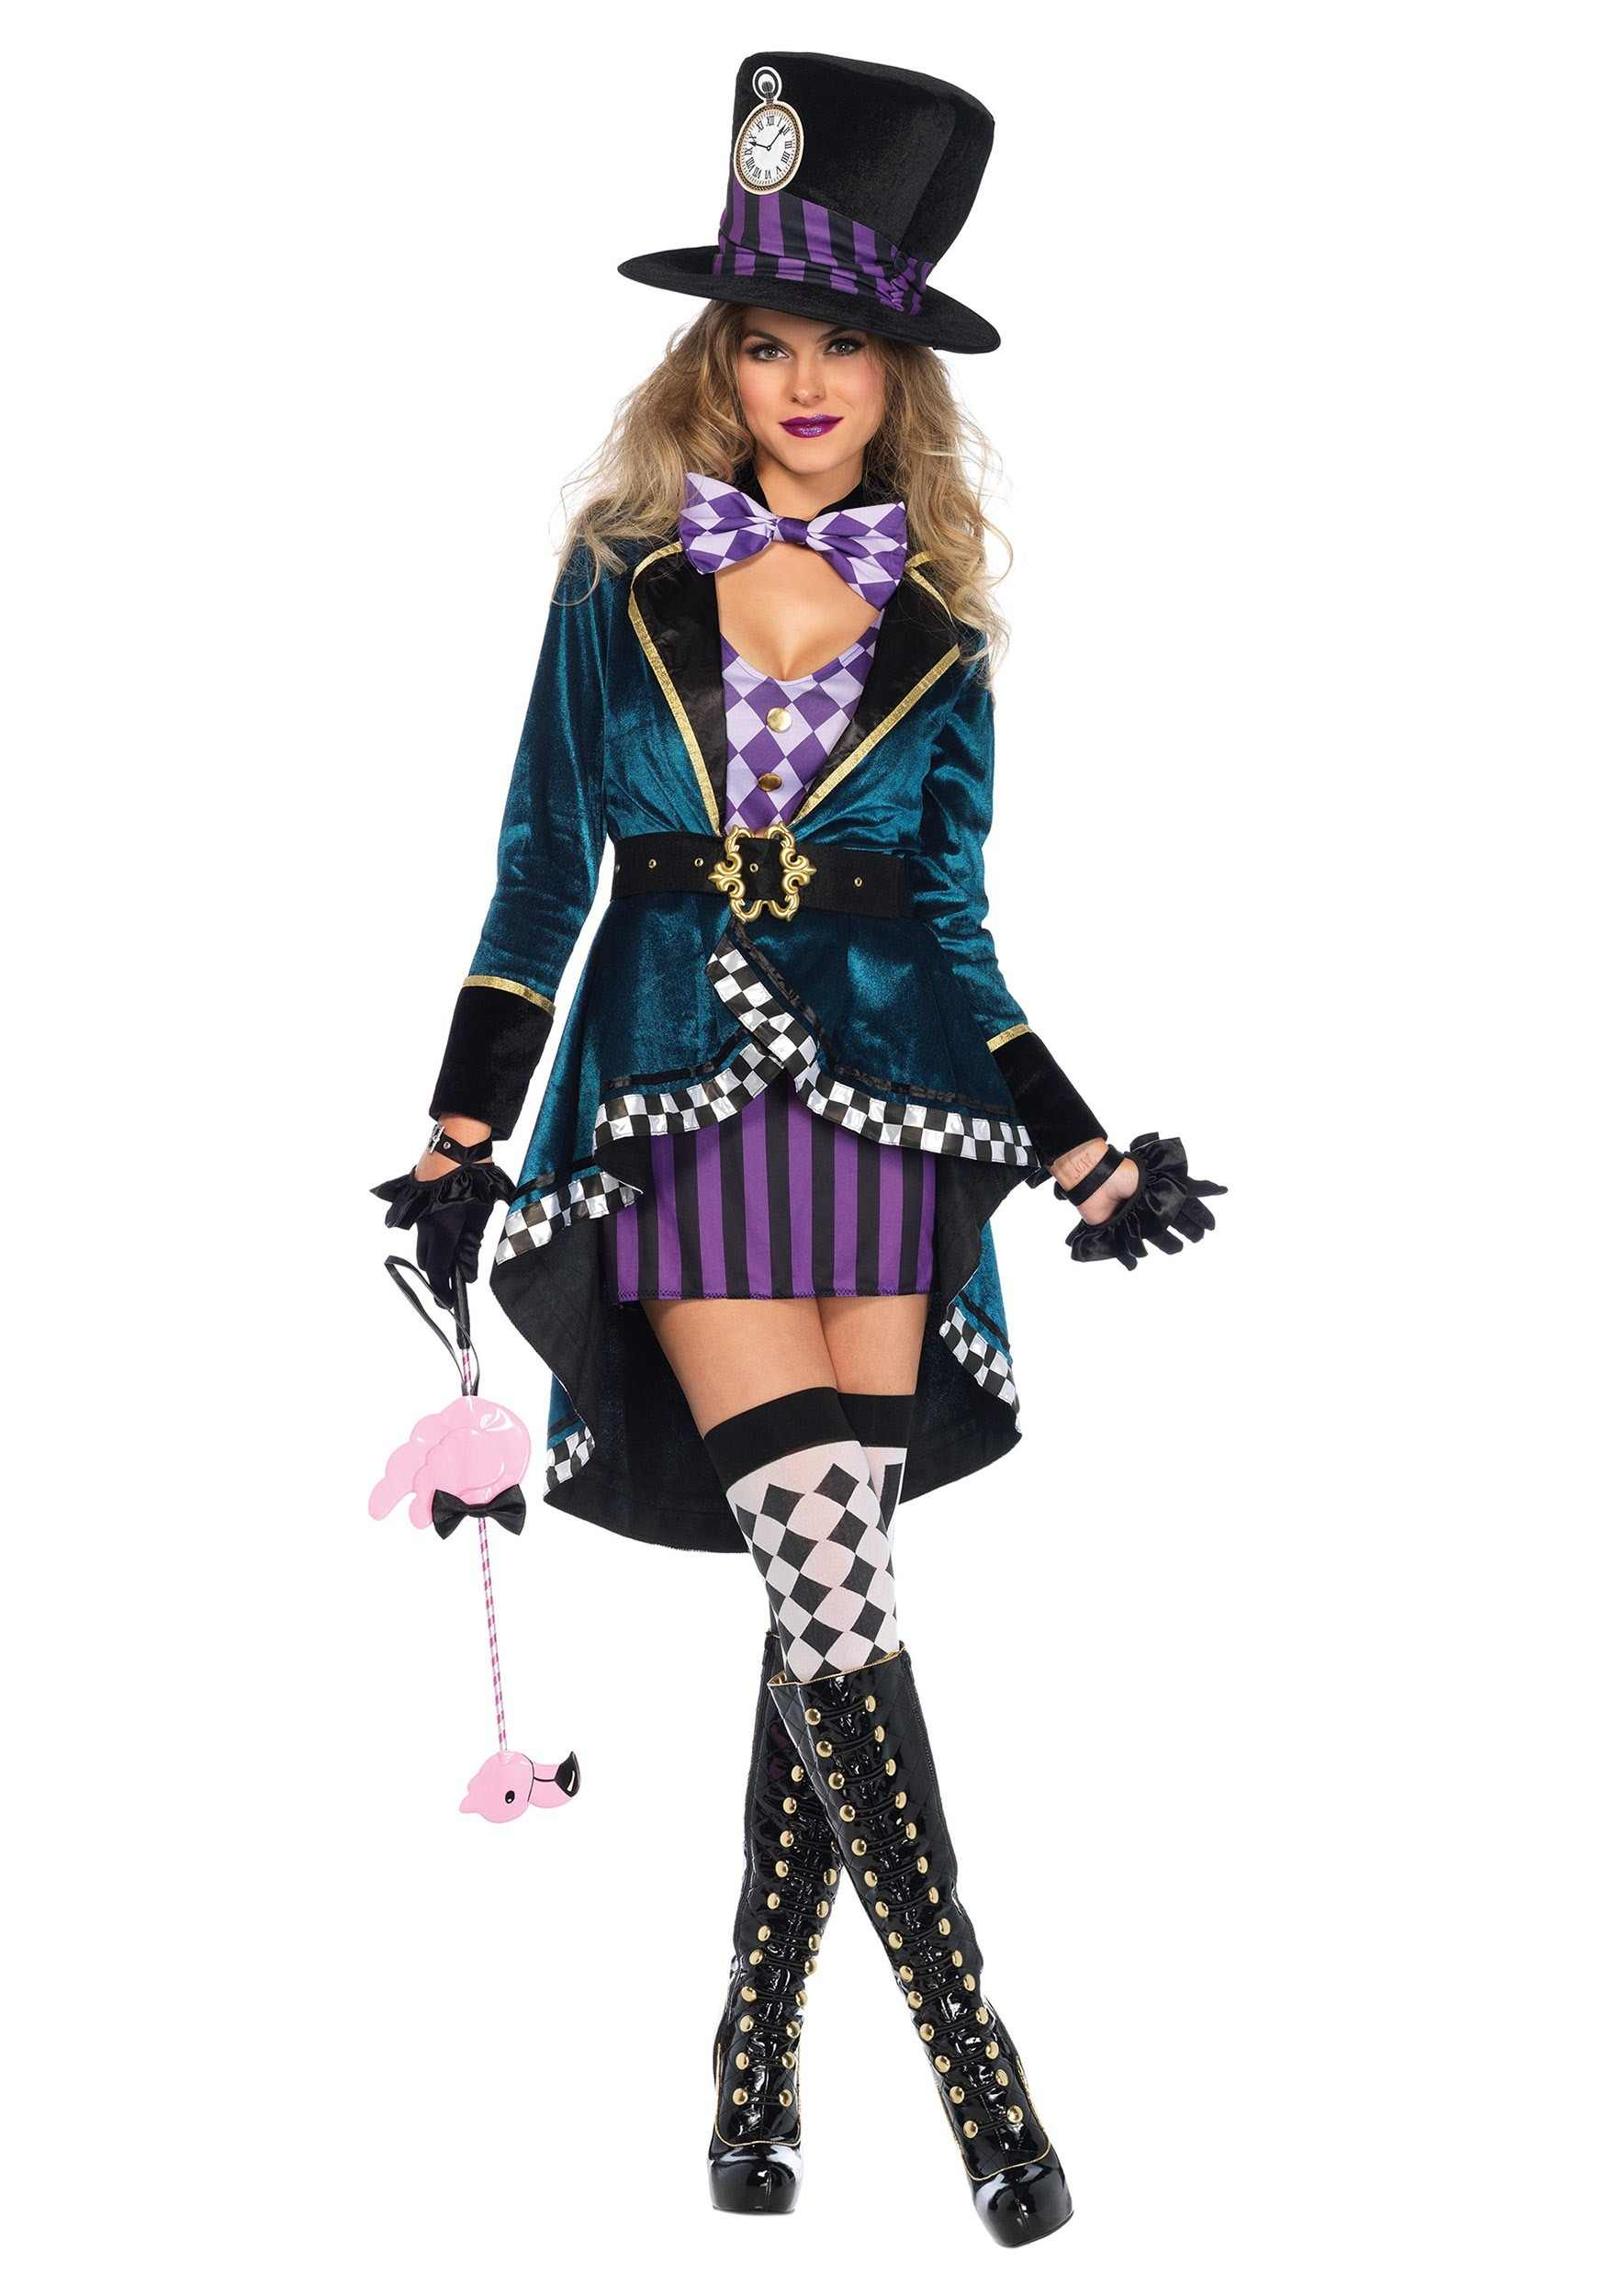 5848c8a1b08 Sexy Delightful Mad Hatter Costume Alice in Wonderland Halloween Costumes  For women Plus Size